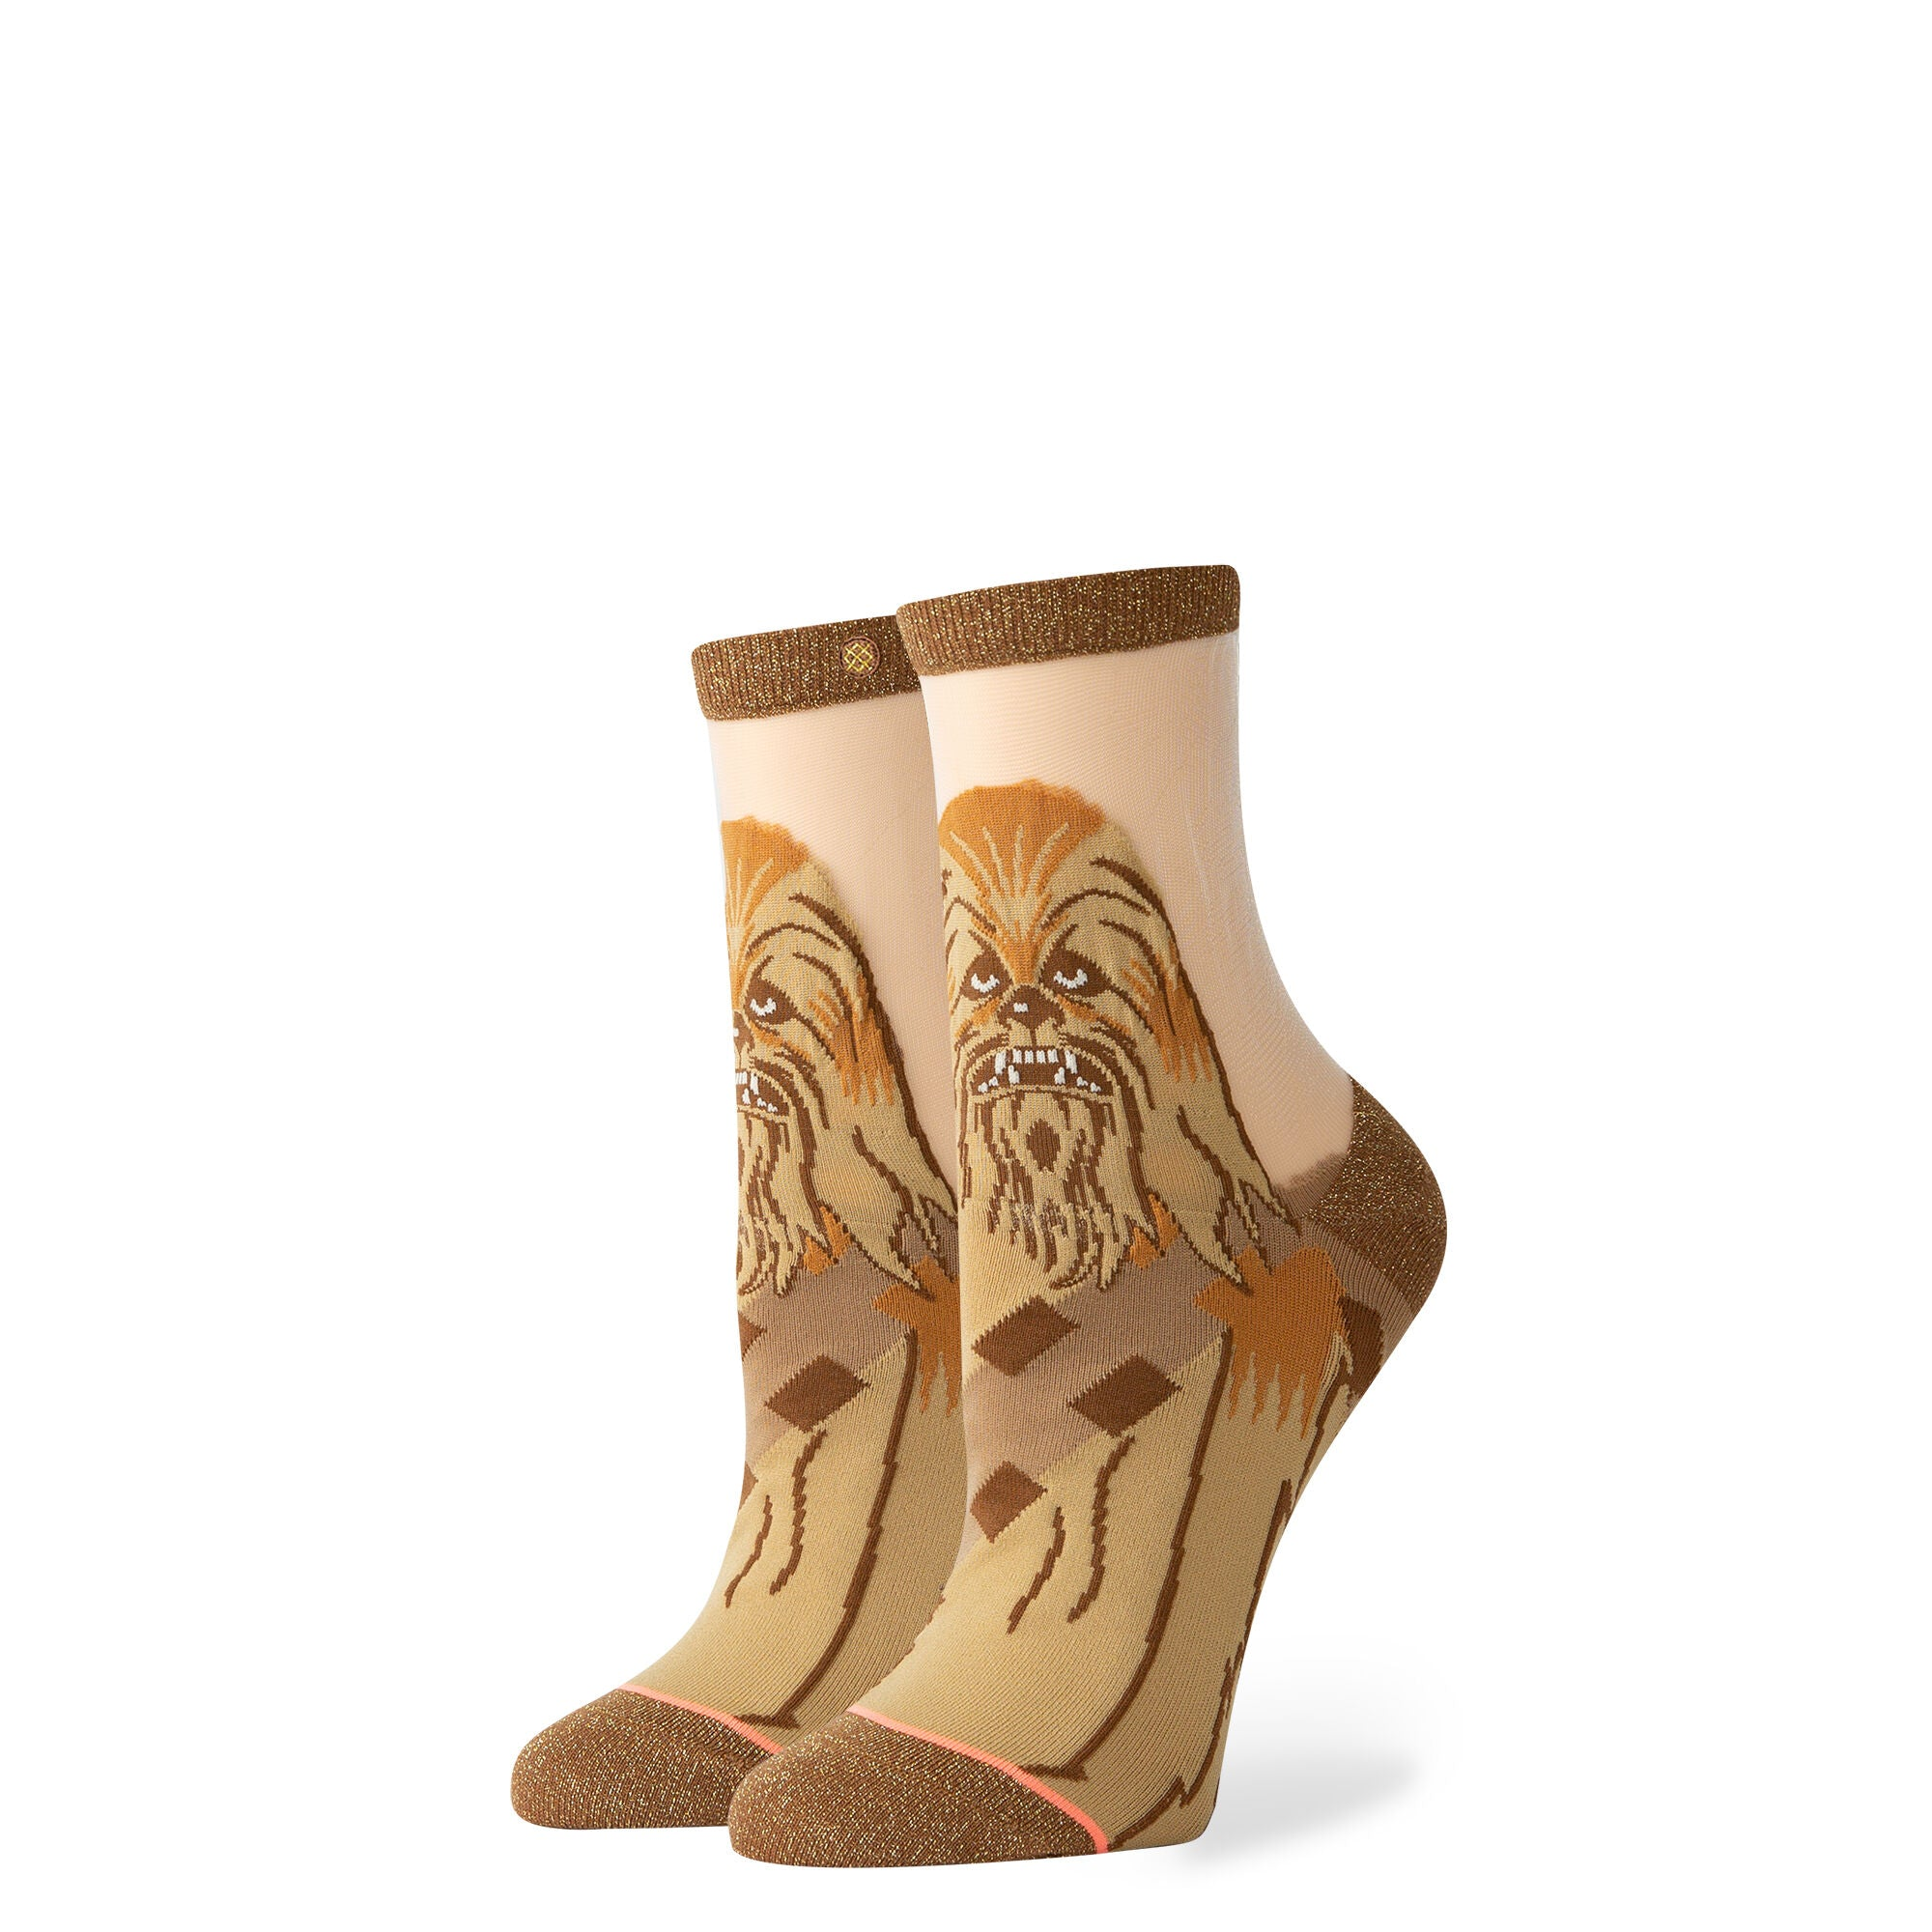 STANCE CHEWBACCA - The Store Stuff